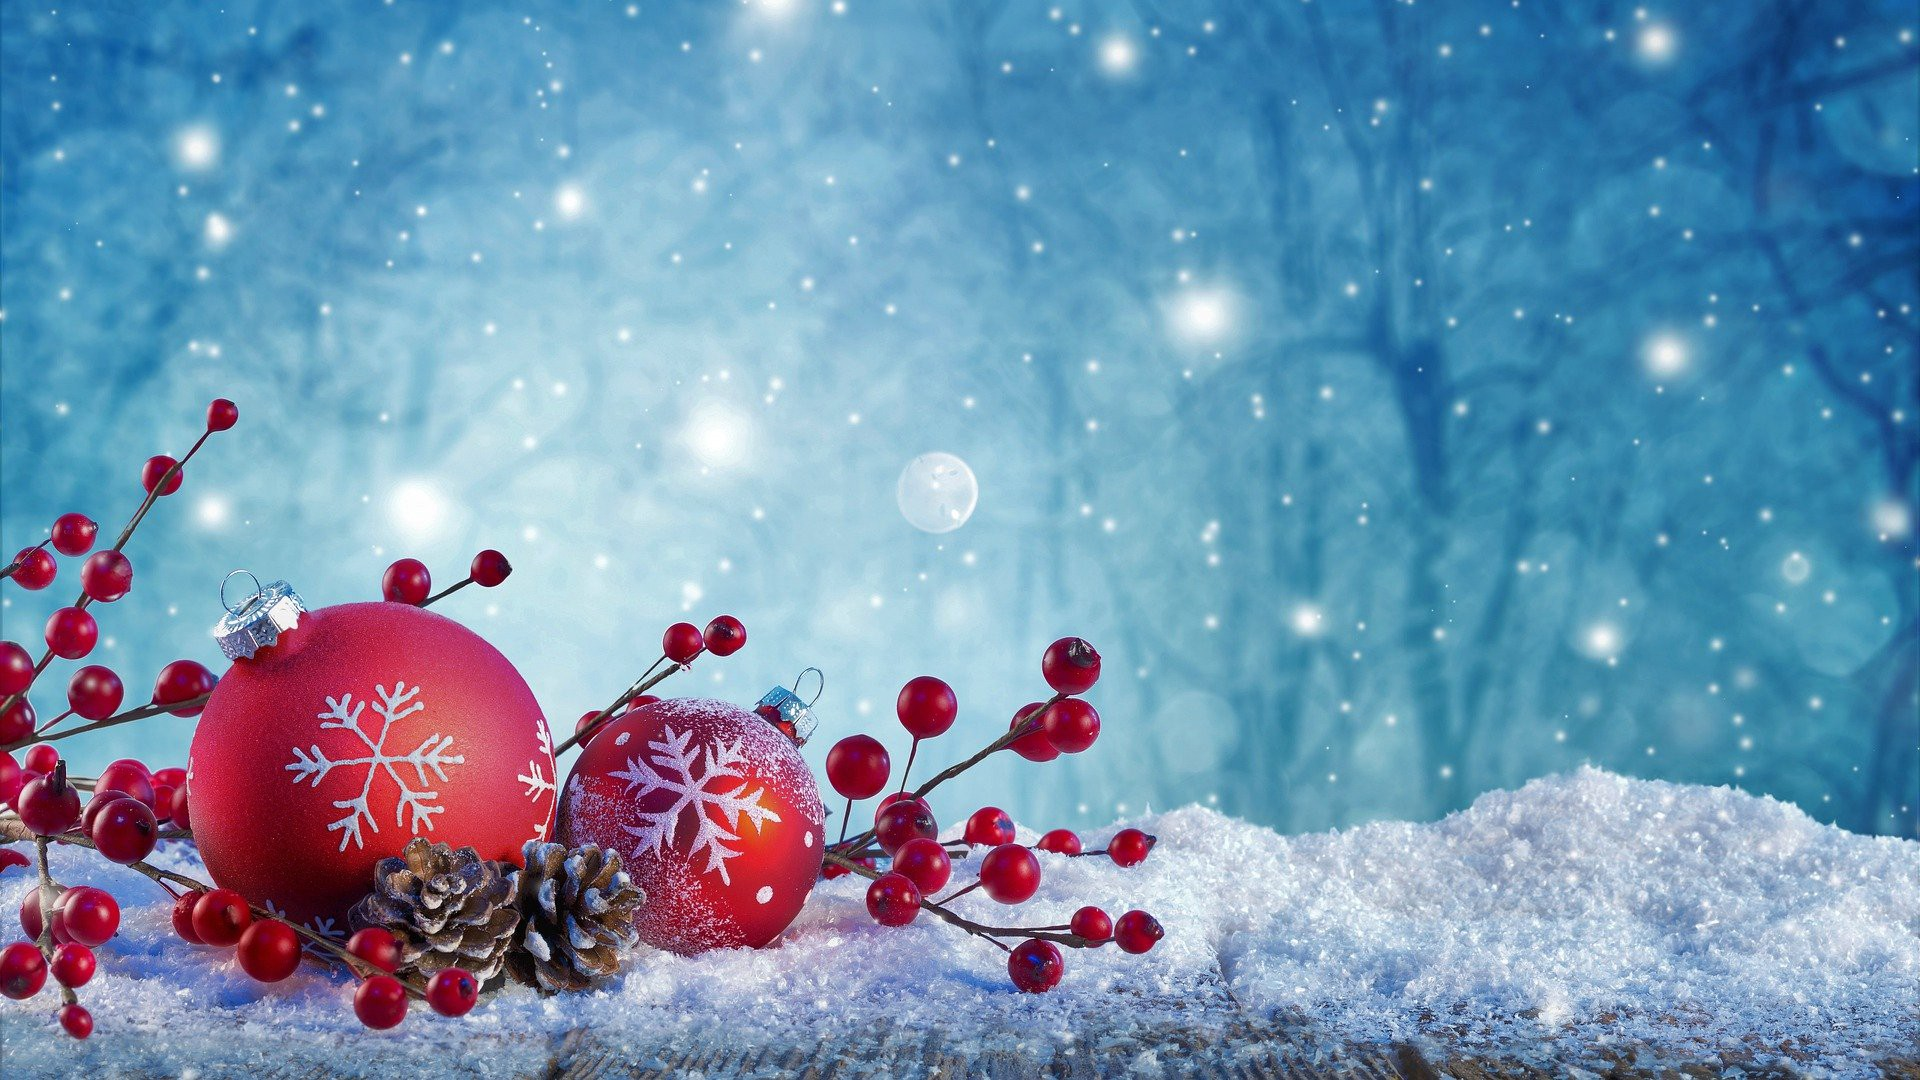 Snowy Christmas scene with red ornaments, pine cones, and red berries shining against a bluish night sky.